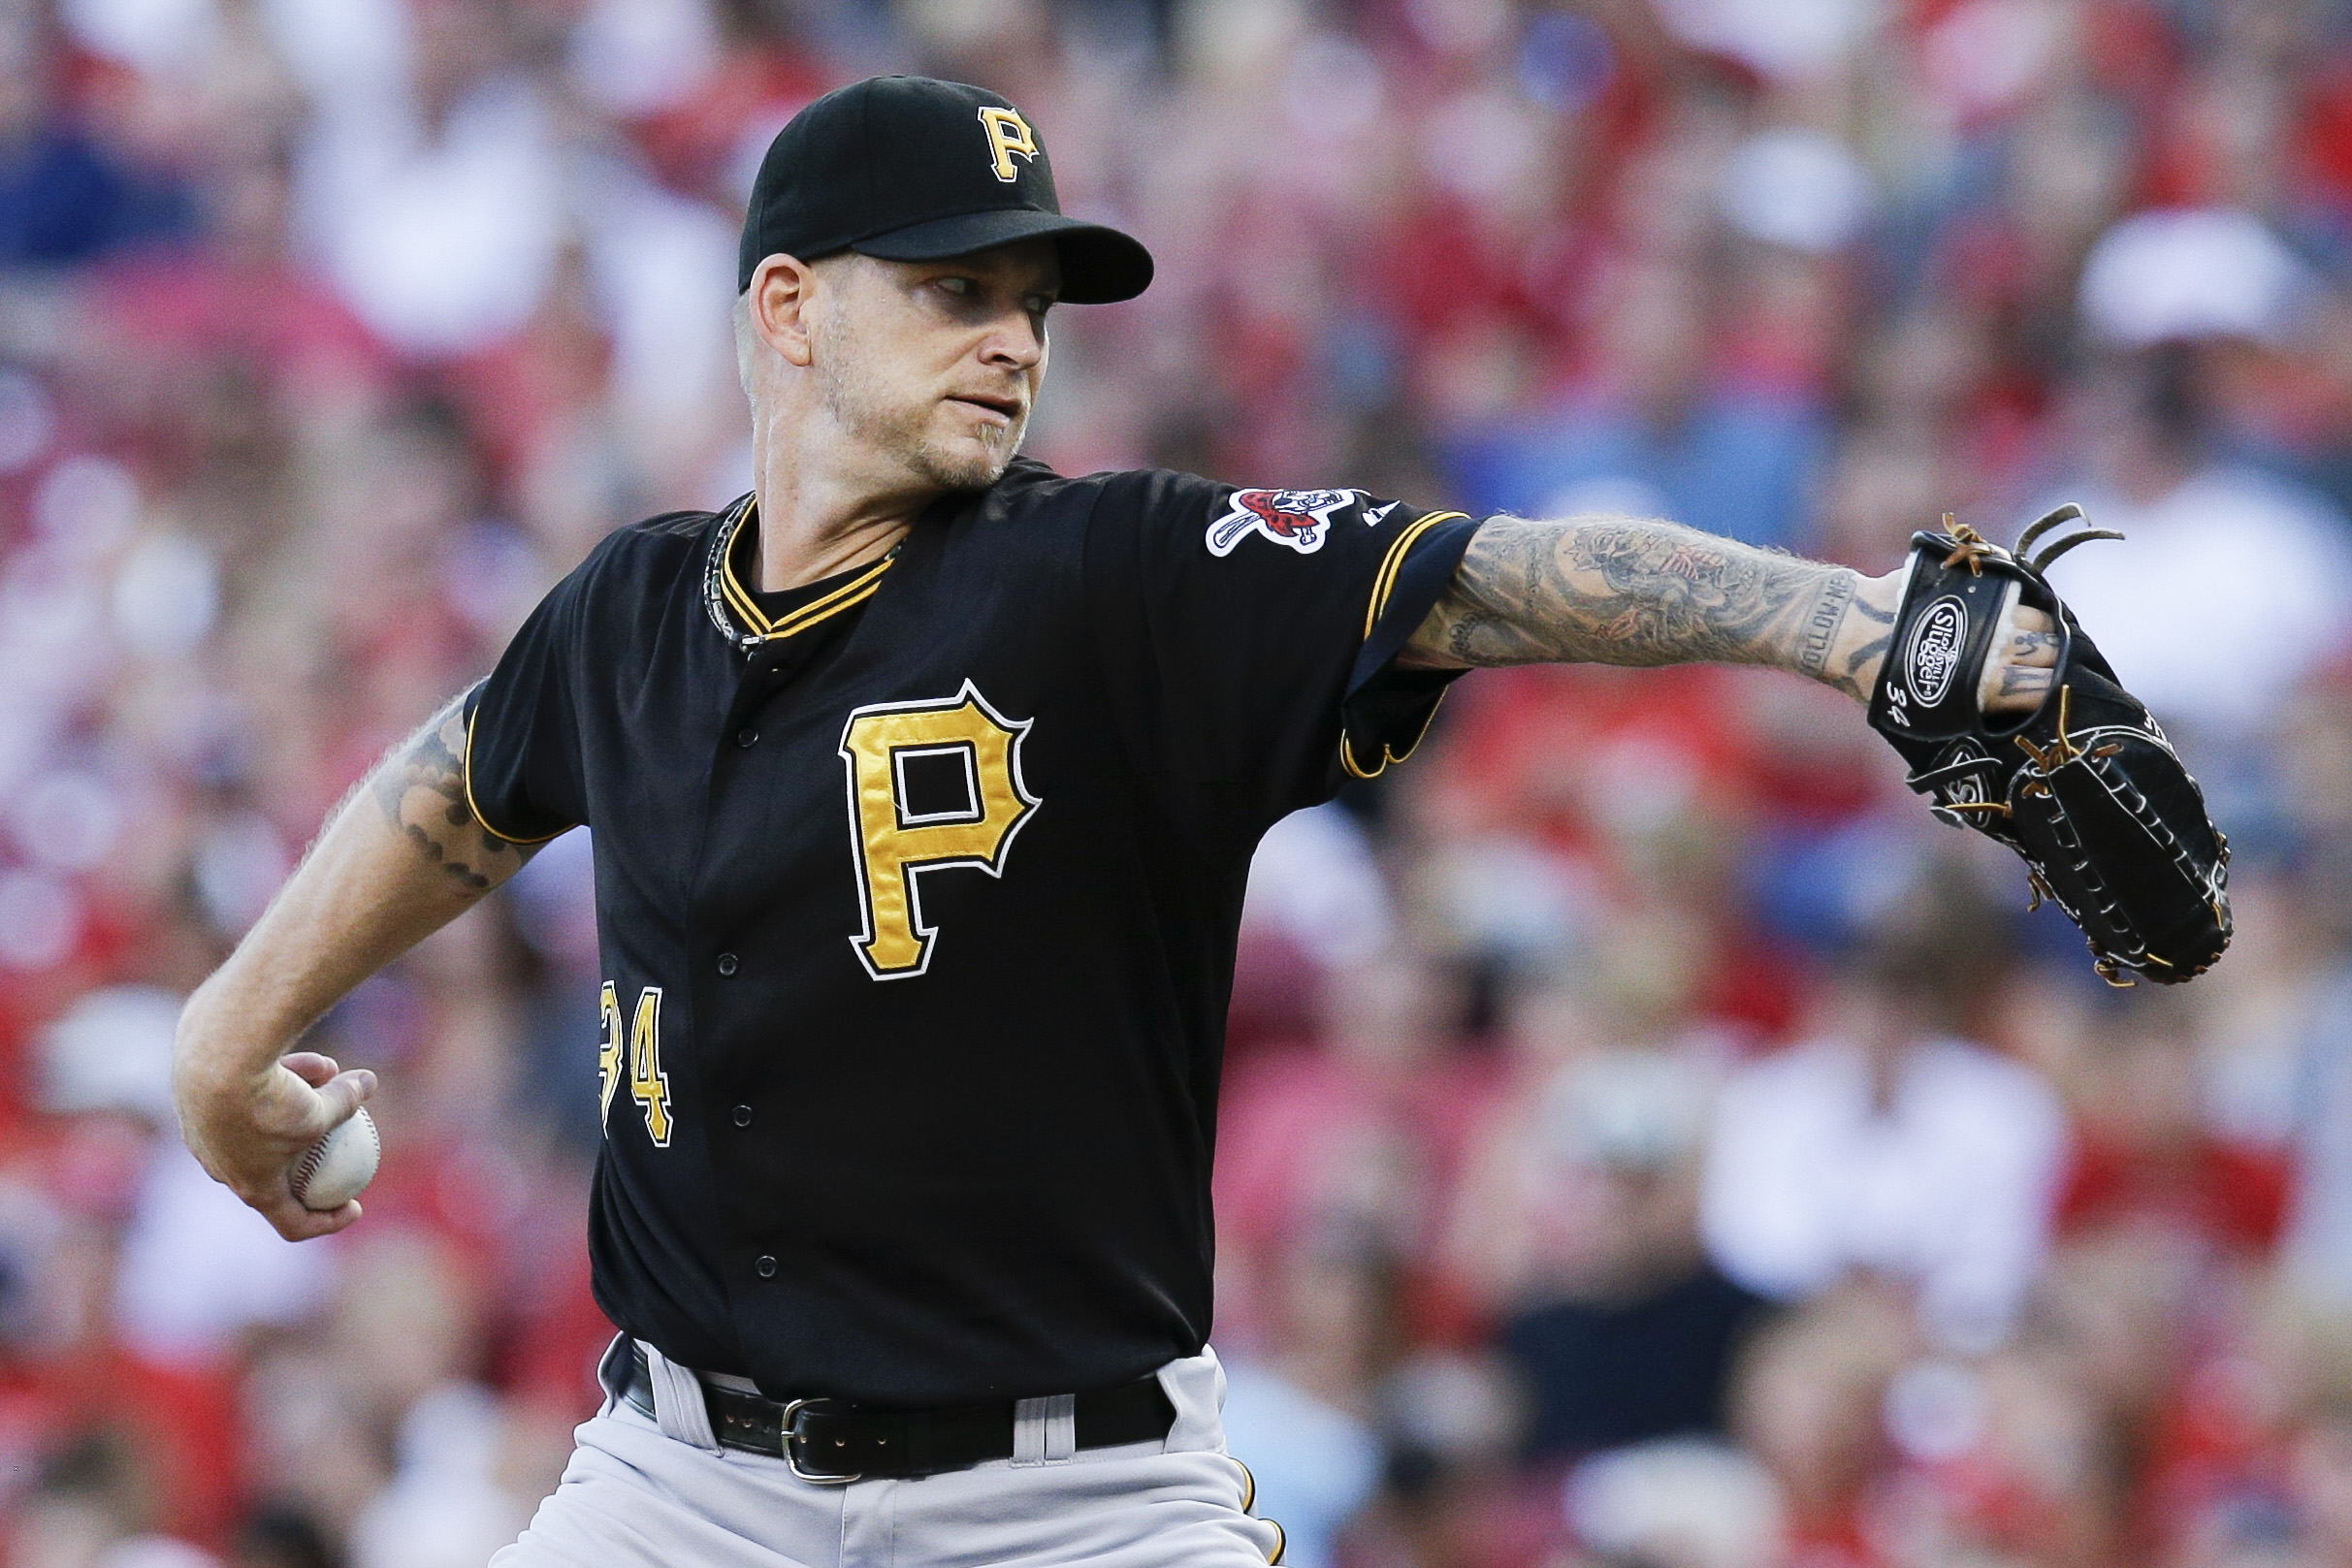 Pittsburgh Pirates starting pitcher A.J. Burnett throws in the second inning of a baseball game against the Cincinnati Reds, Thursday, July 30, 2015, in Cincinnati. (AP Photo/John Minchillo)